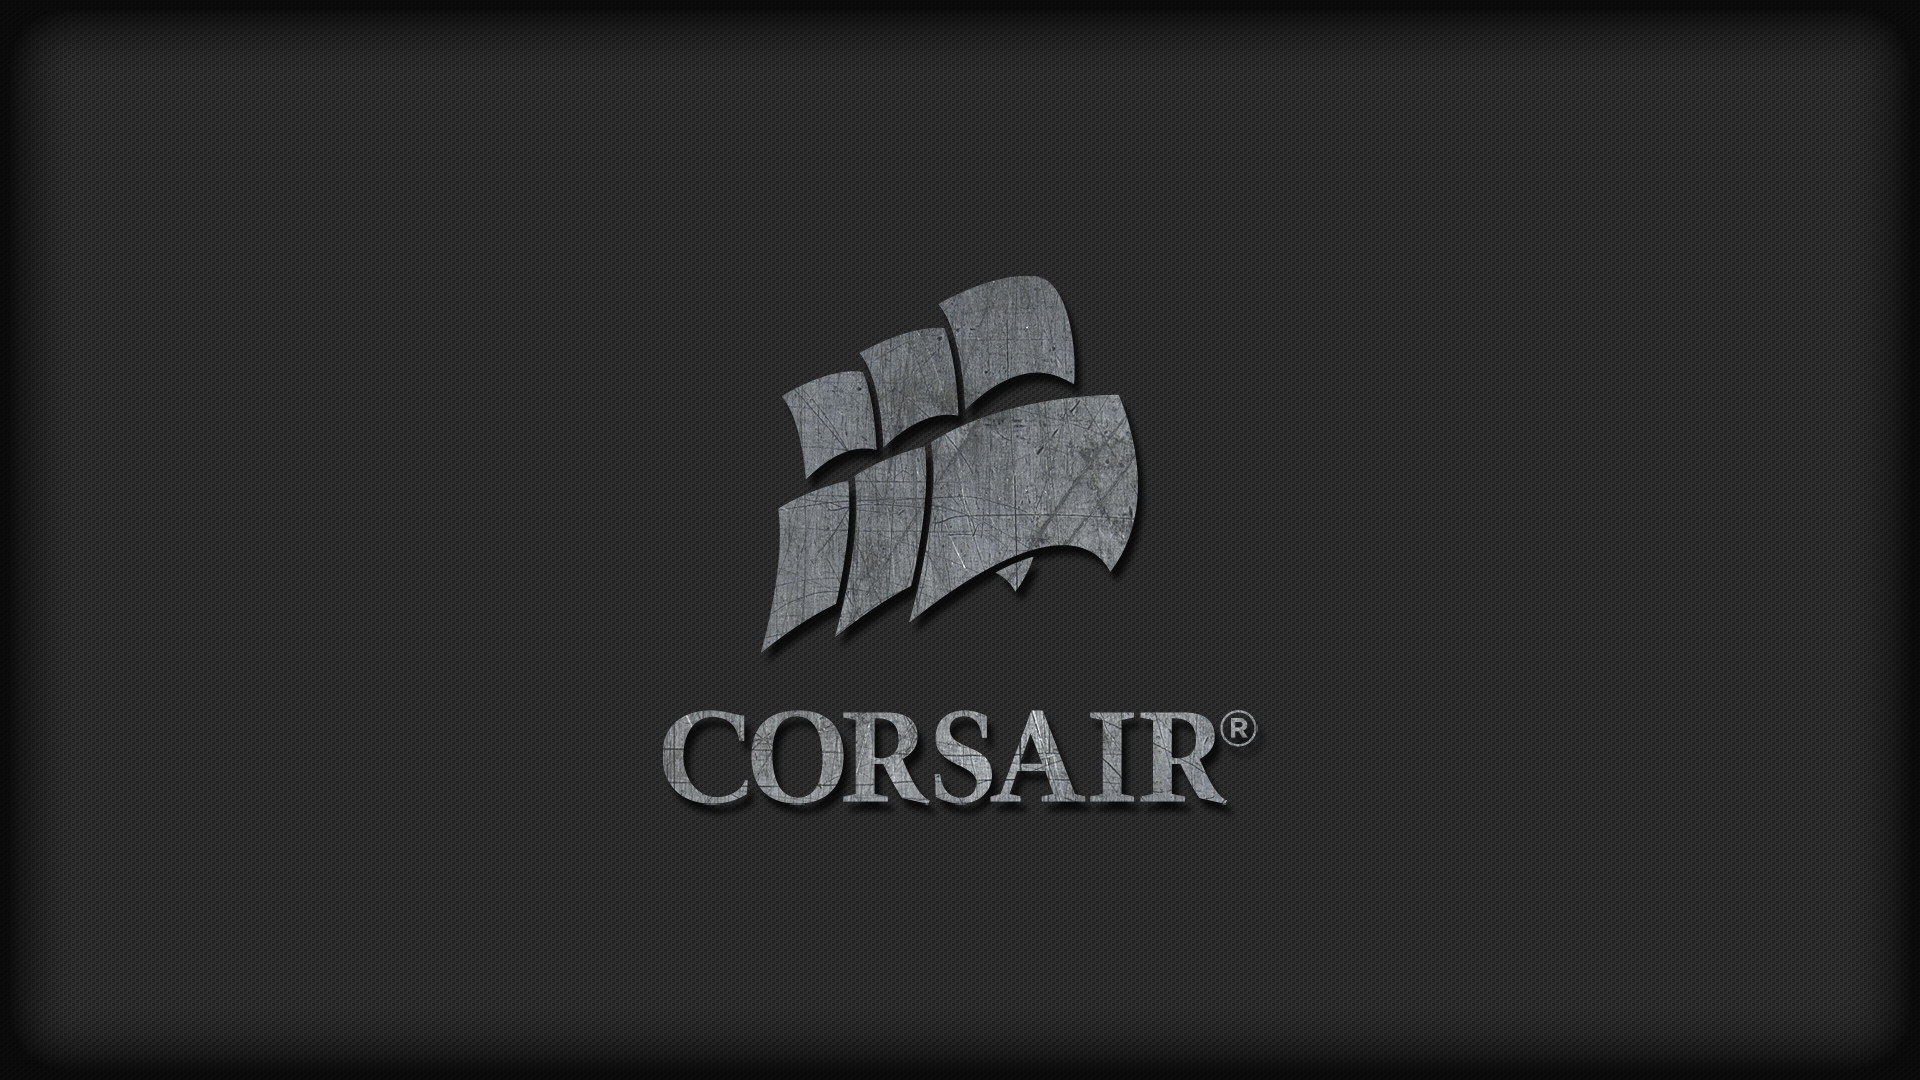 Corsair wallpaper by o0hexen0o on deviantart for Corsair wallpaper 4k